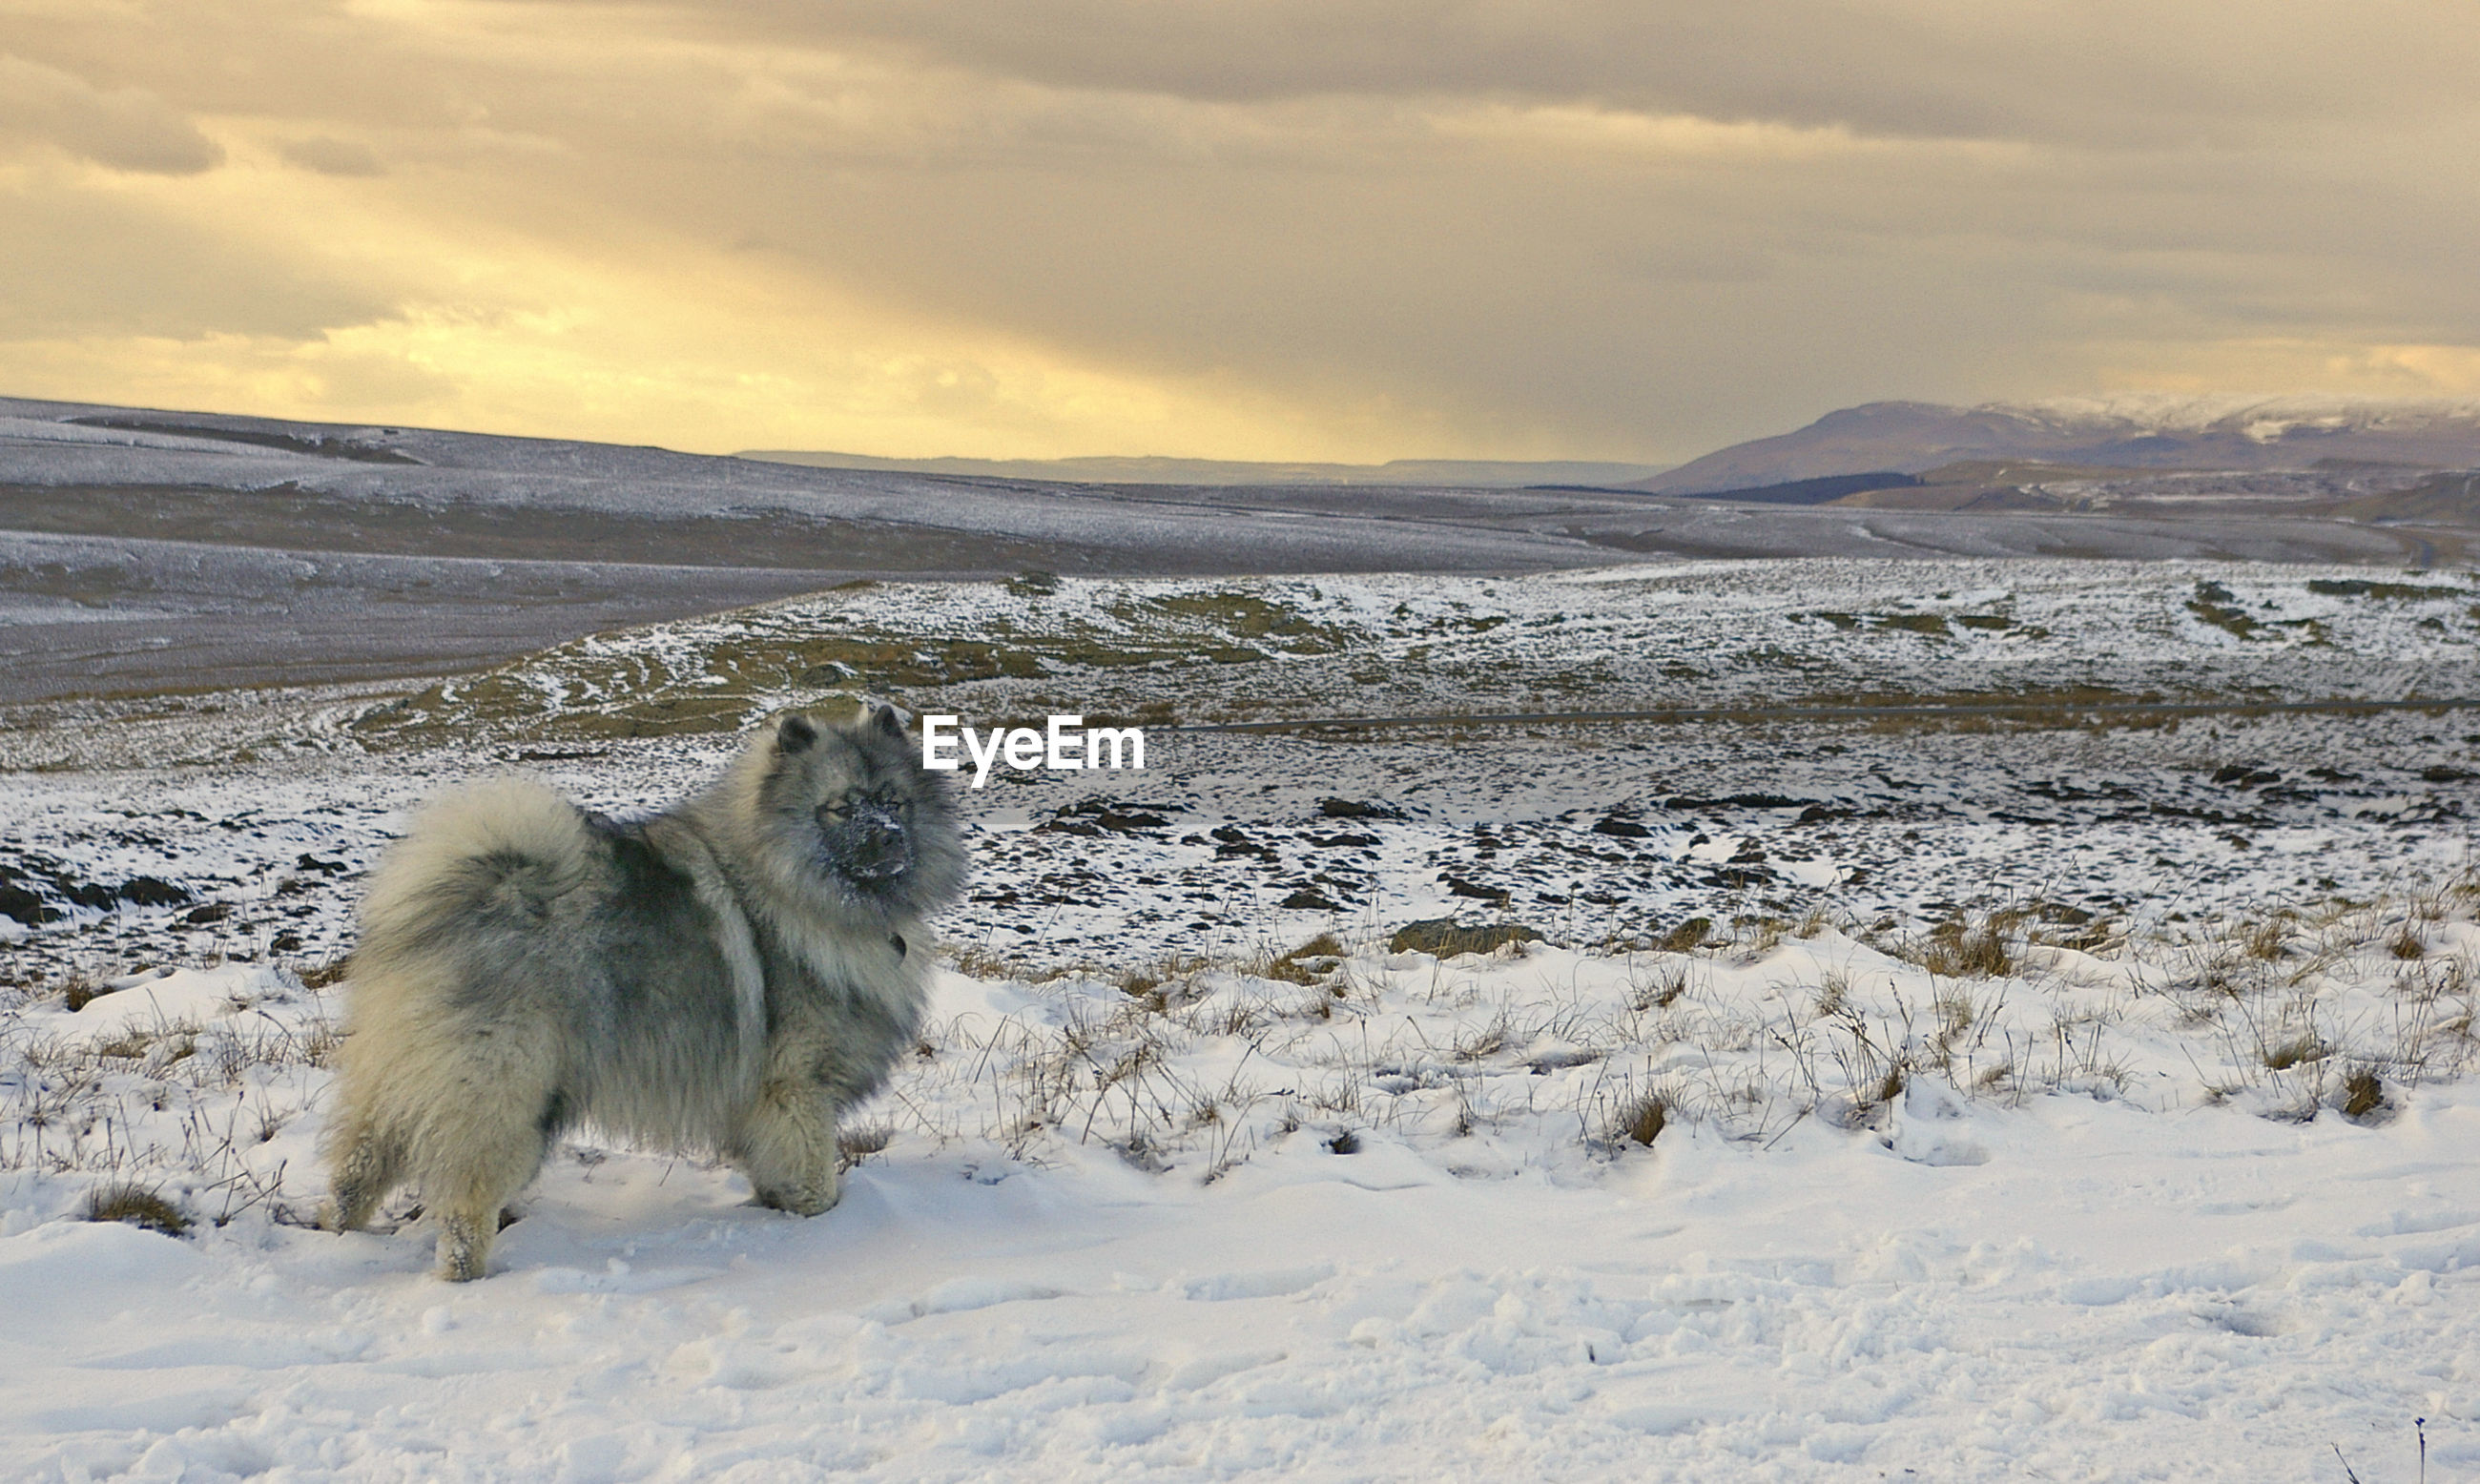 Keeshond looking away on snowcapped field at sunset